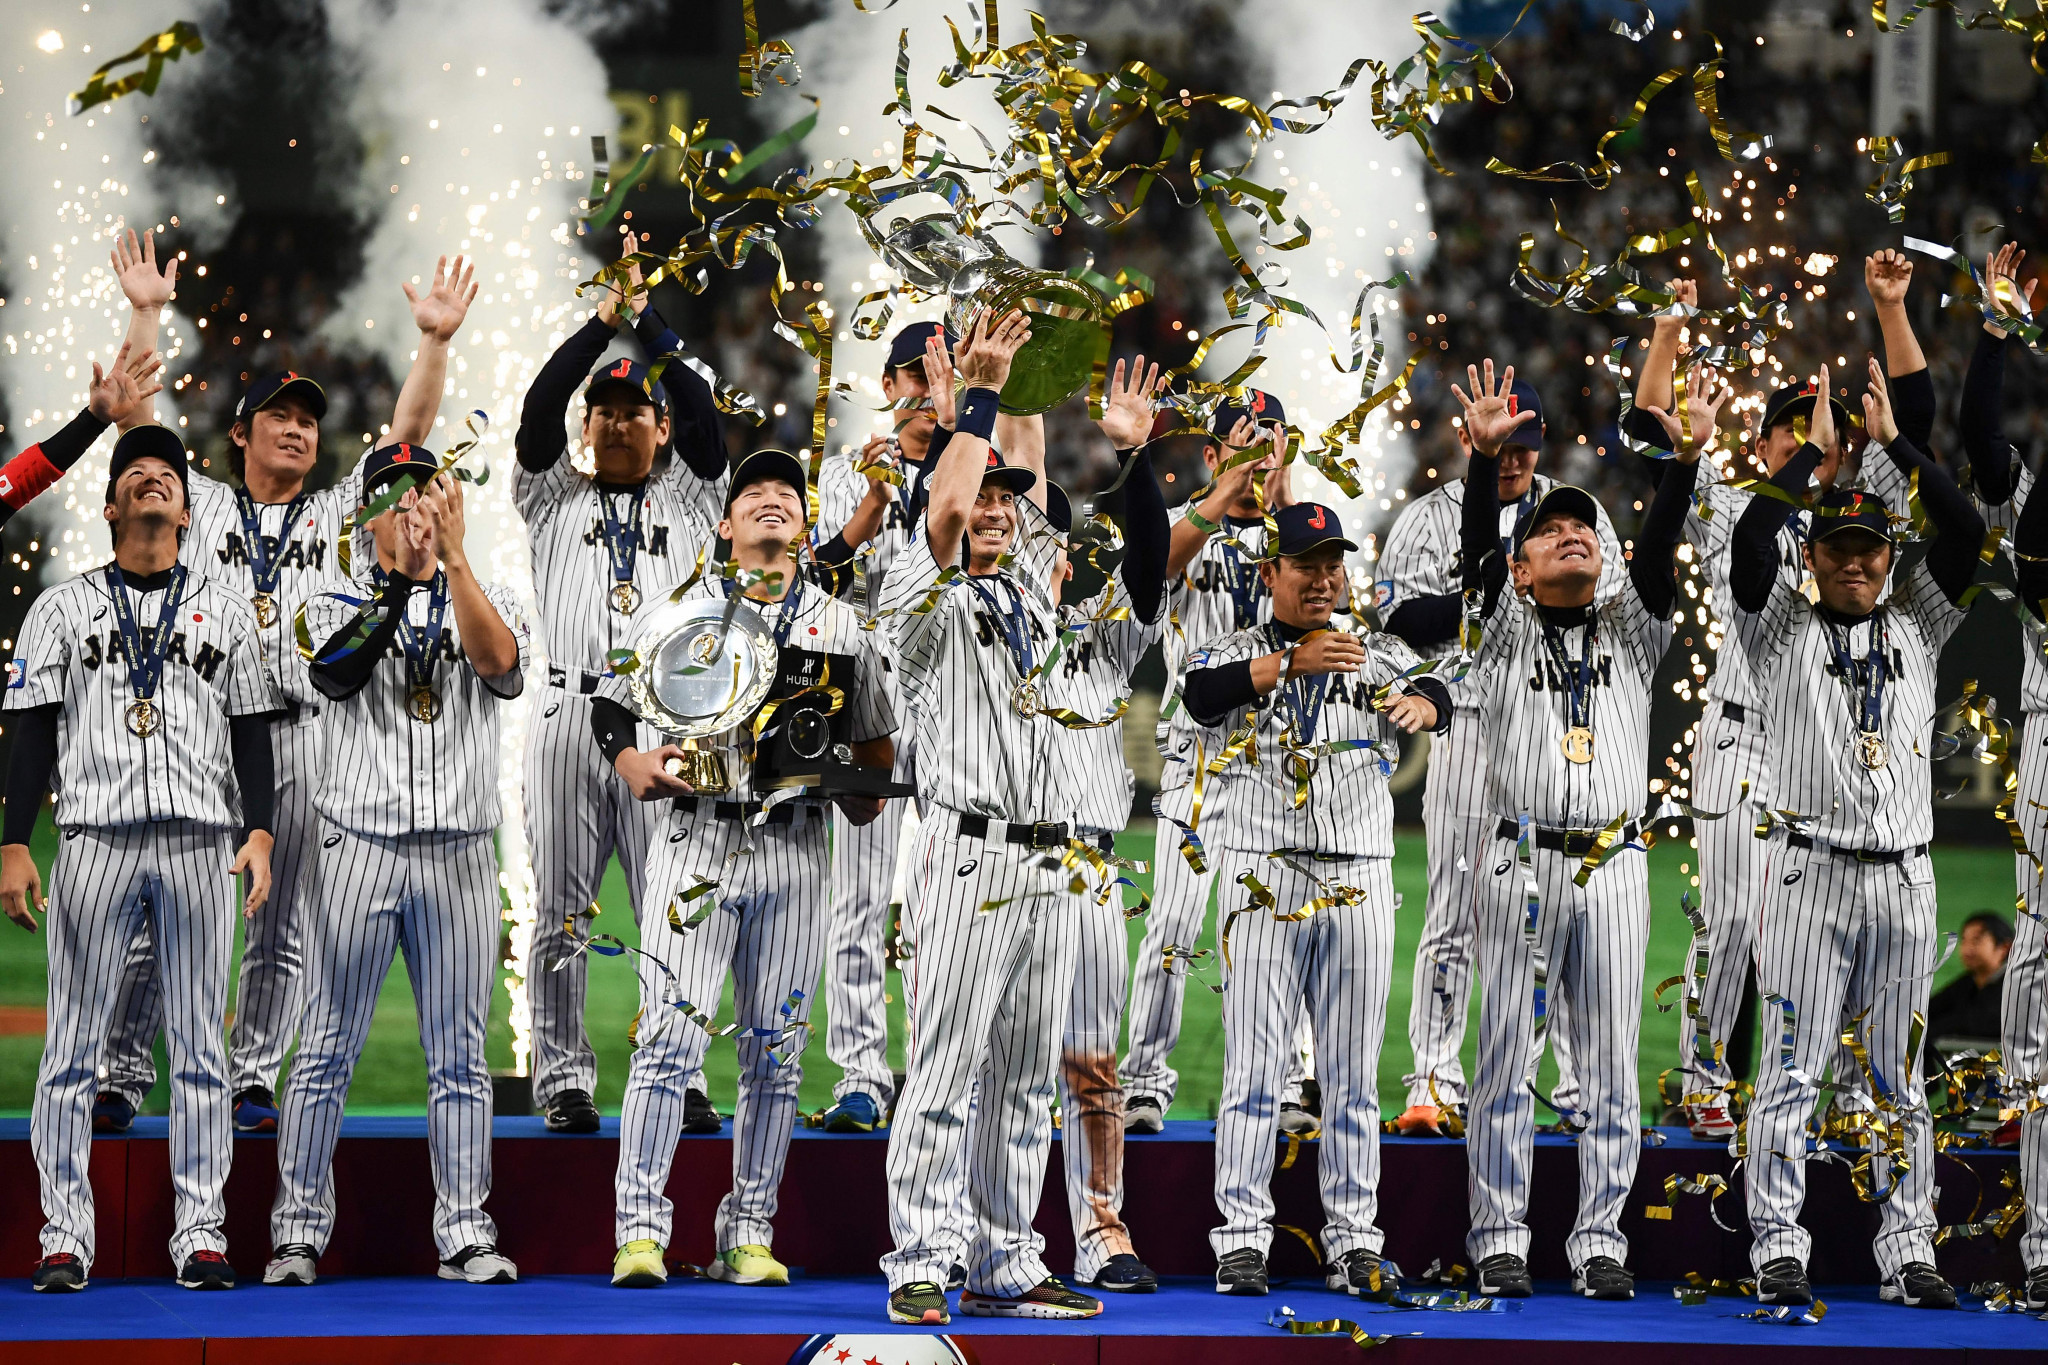 Japan tops men's and women's baseball lists in latest WBSC rankings